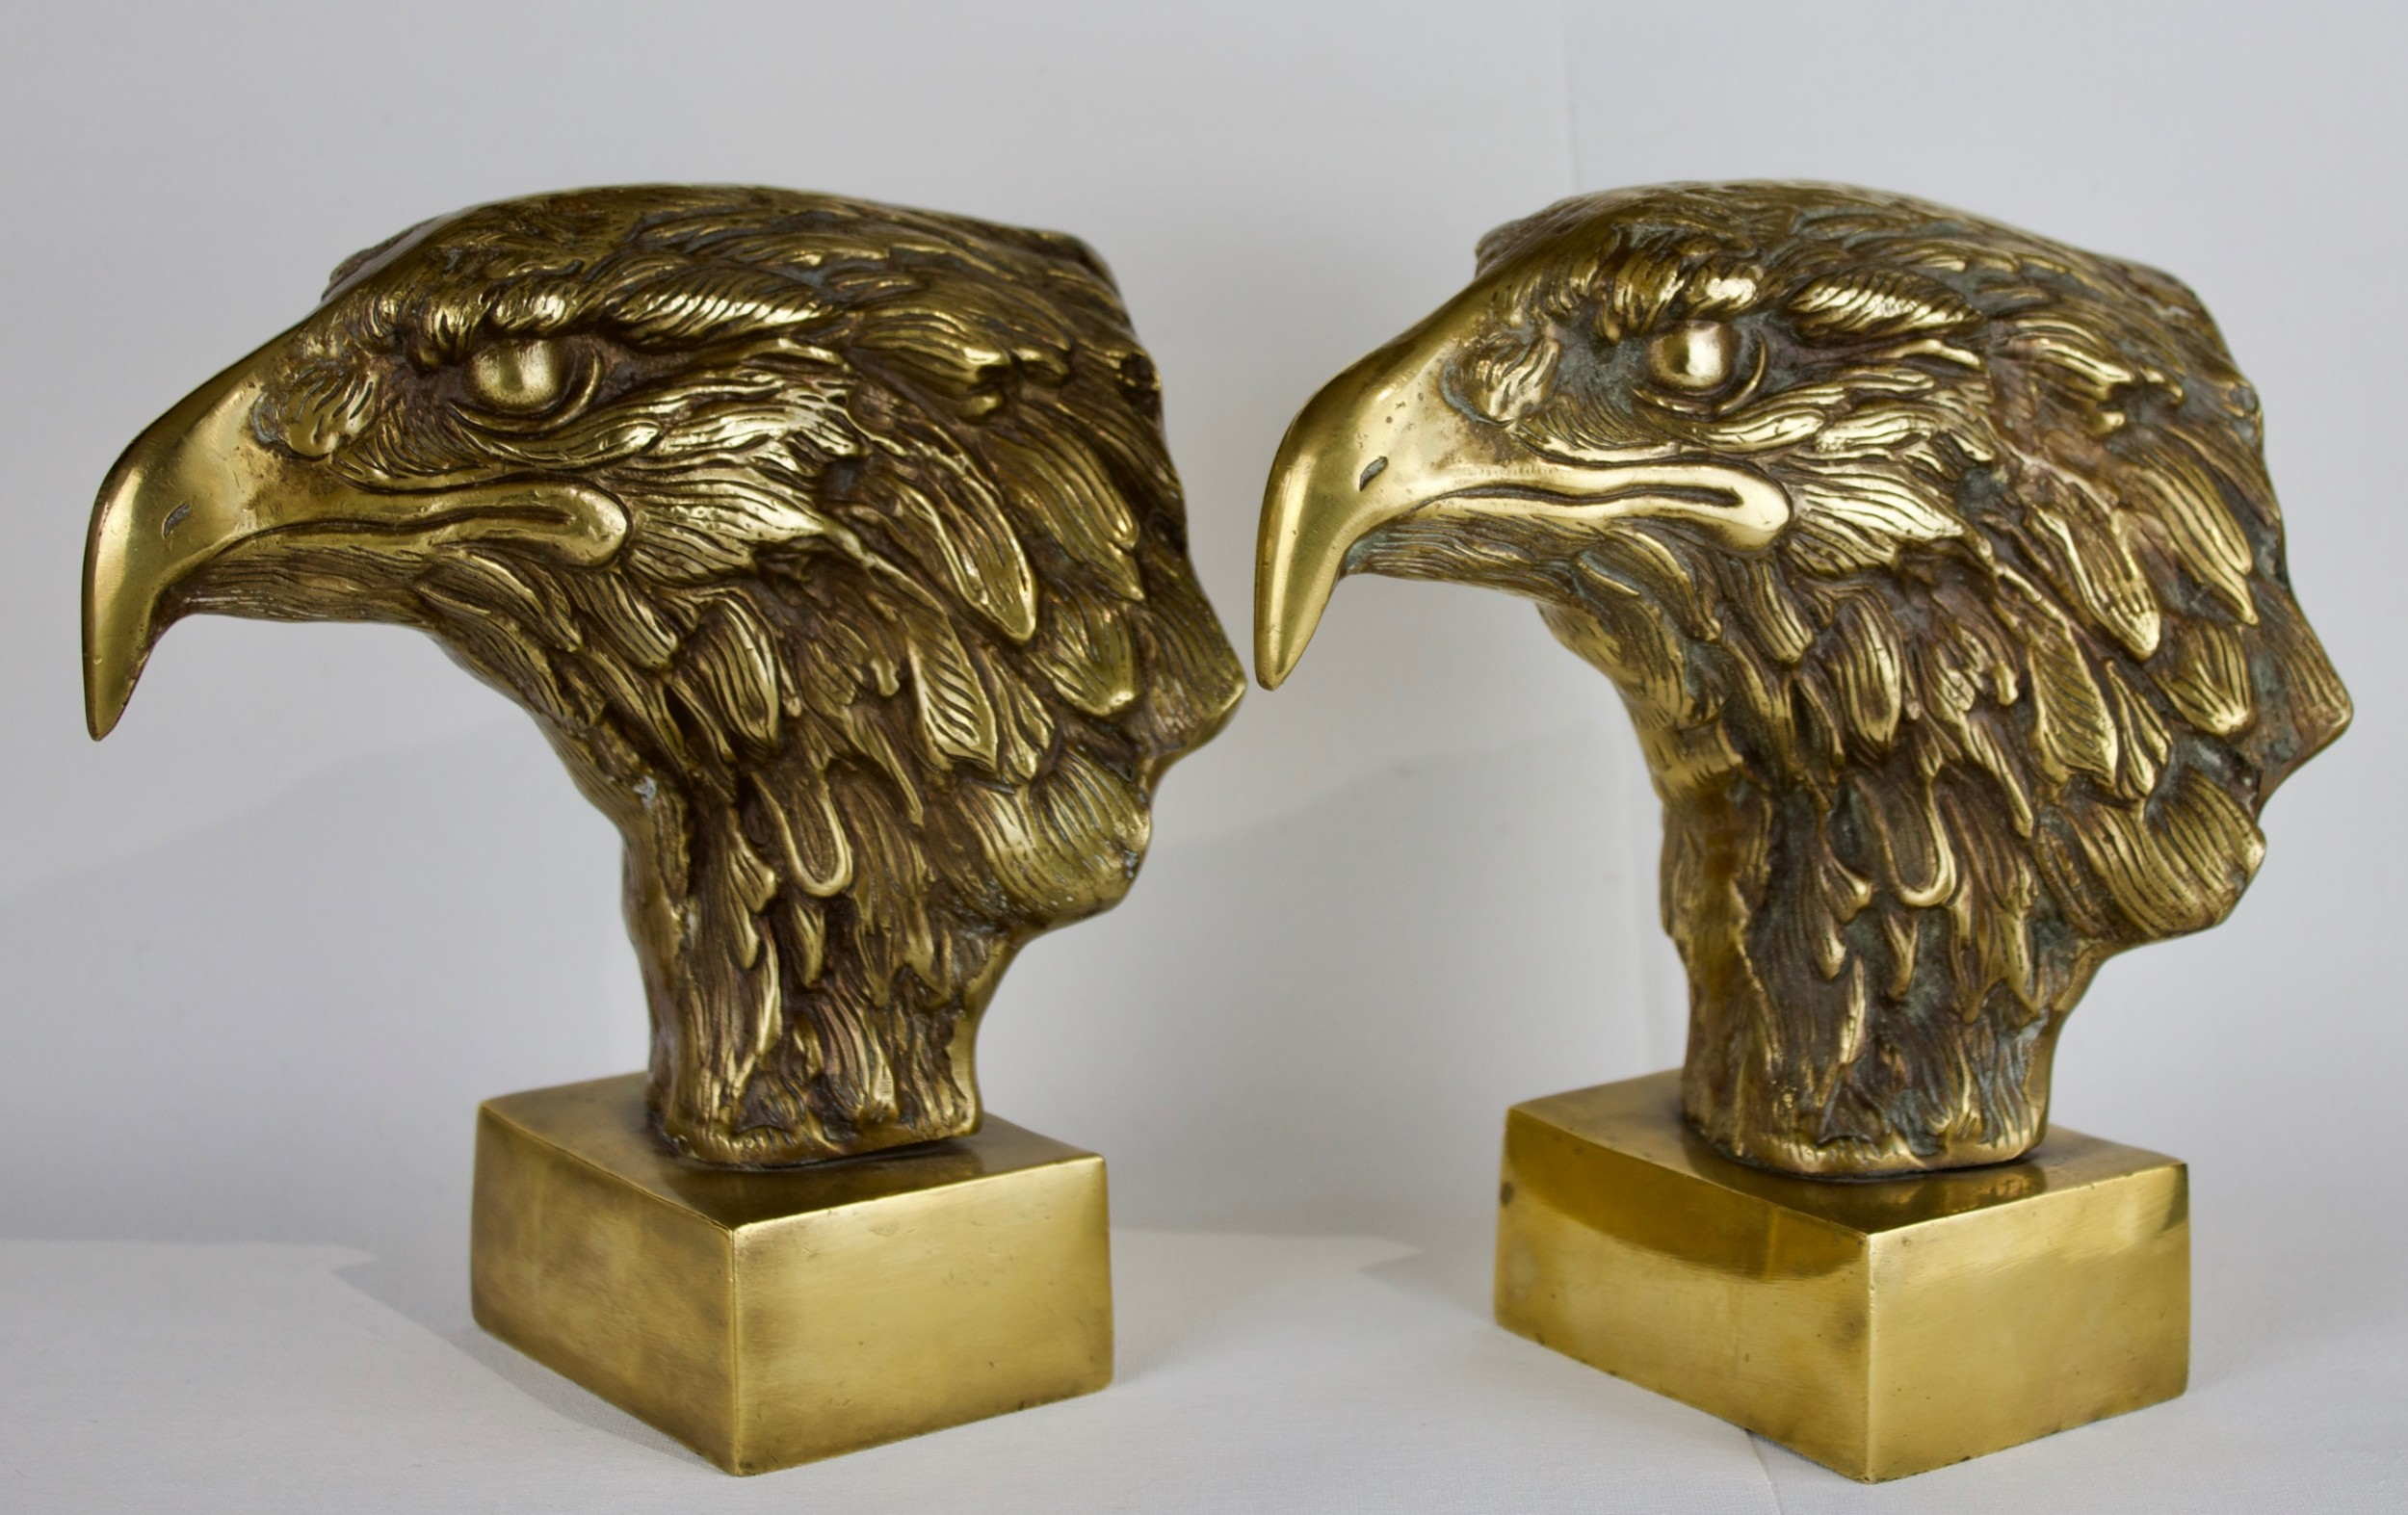 a pair of sculpturedeagle heads